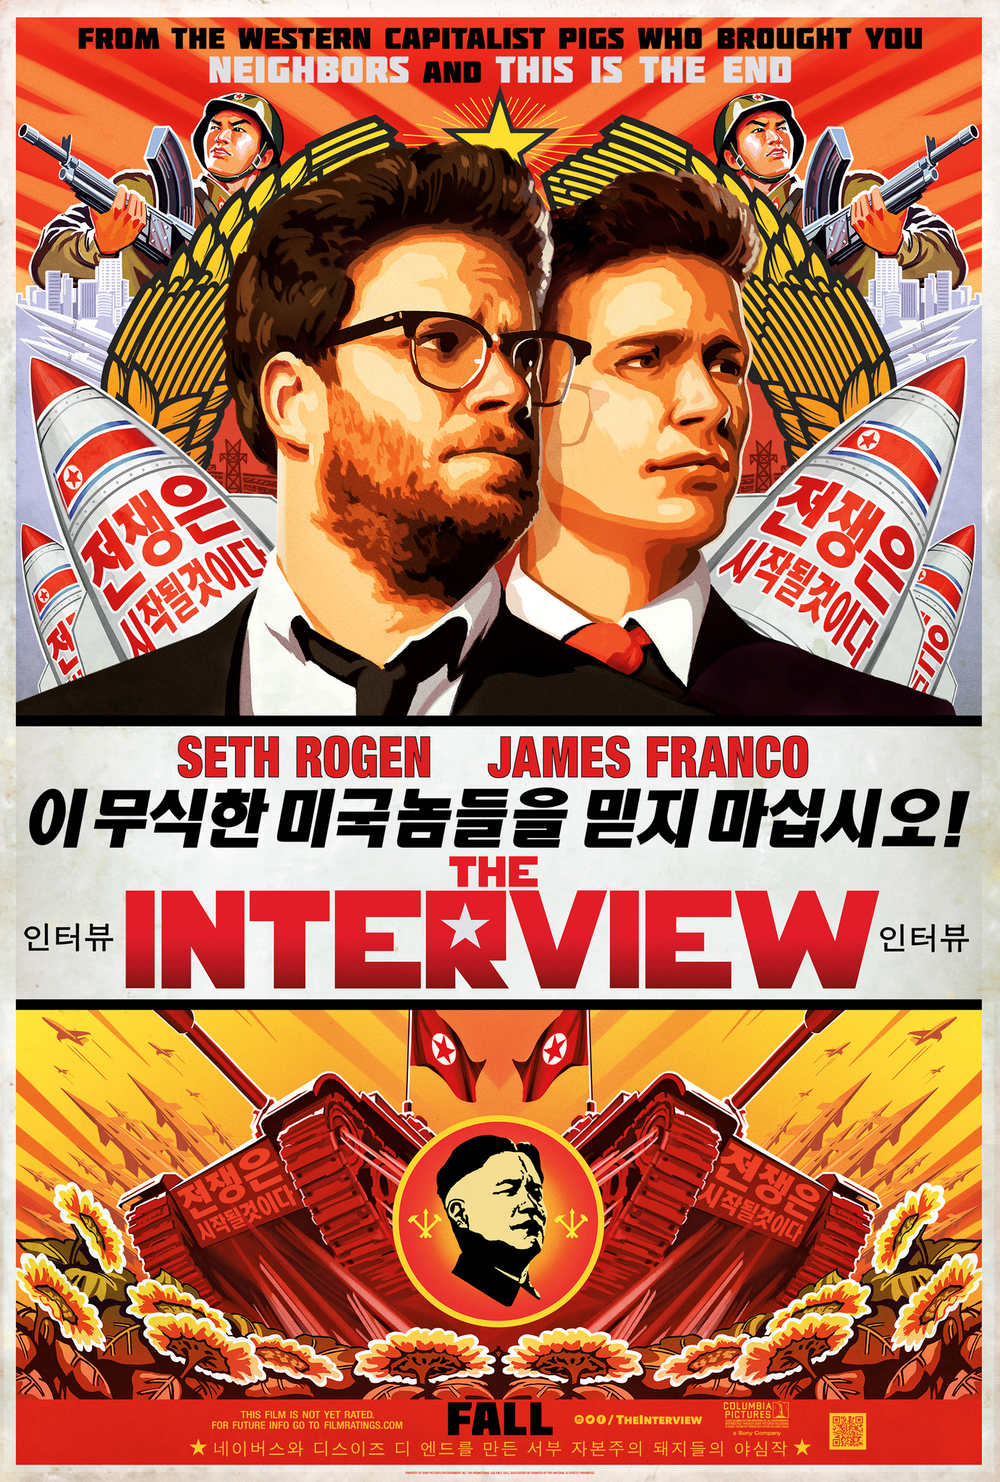 The-Interview-Teaser-Poster.jpg